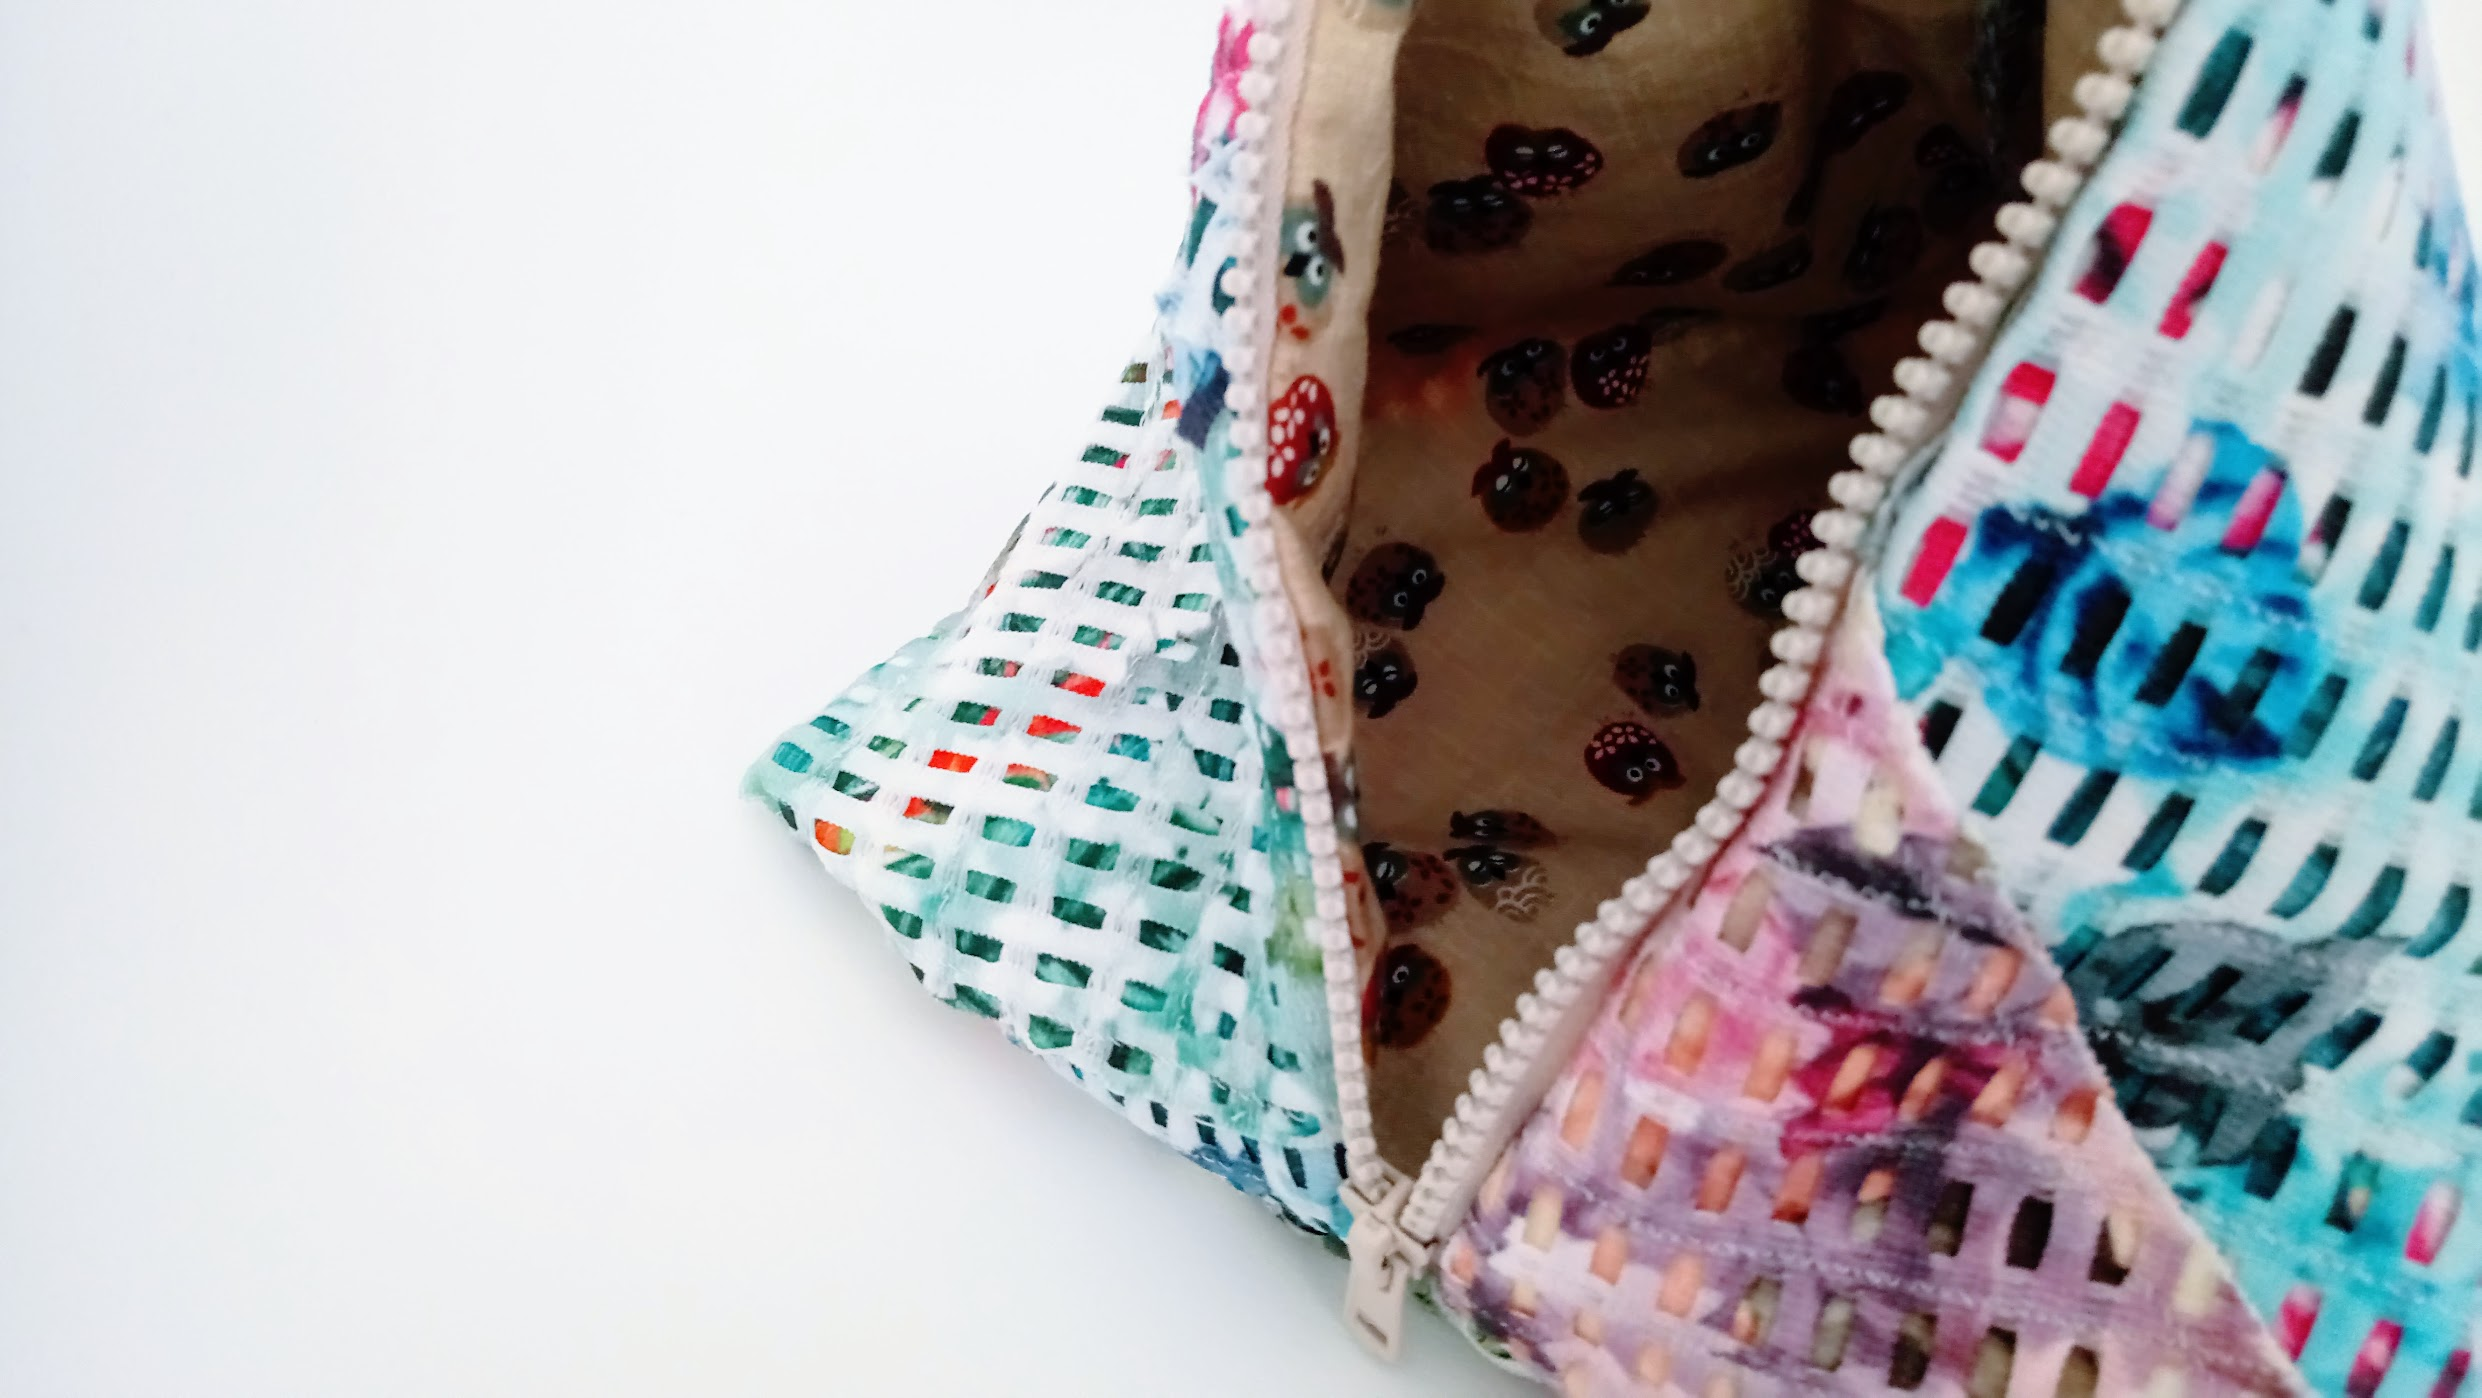 Fabric Collage Tetrahedron Bag - DIY Fashion project | fafafoom.com